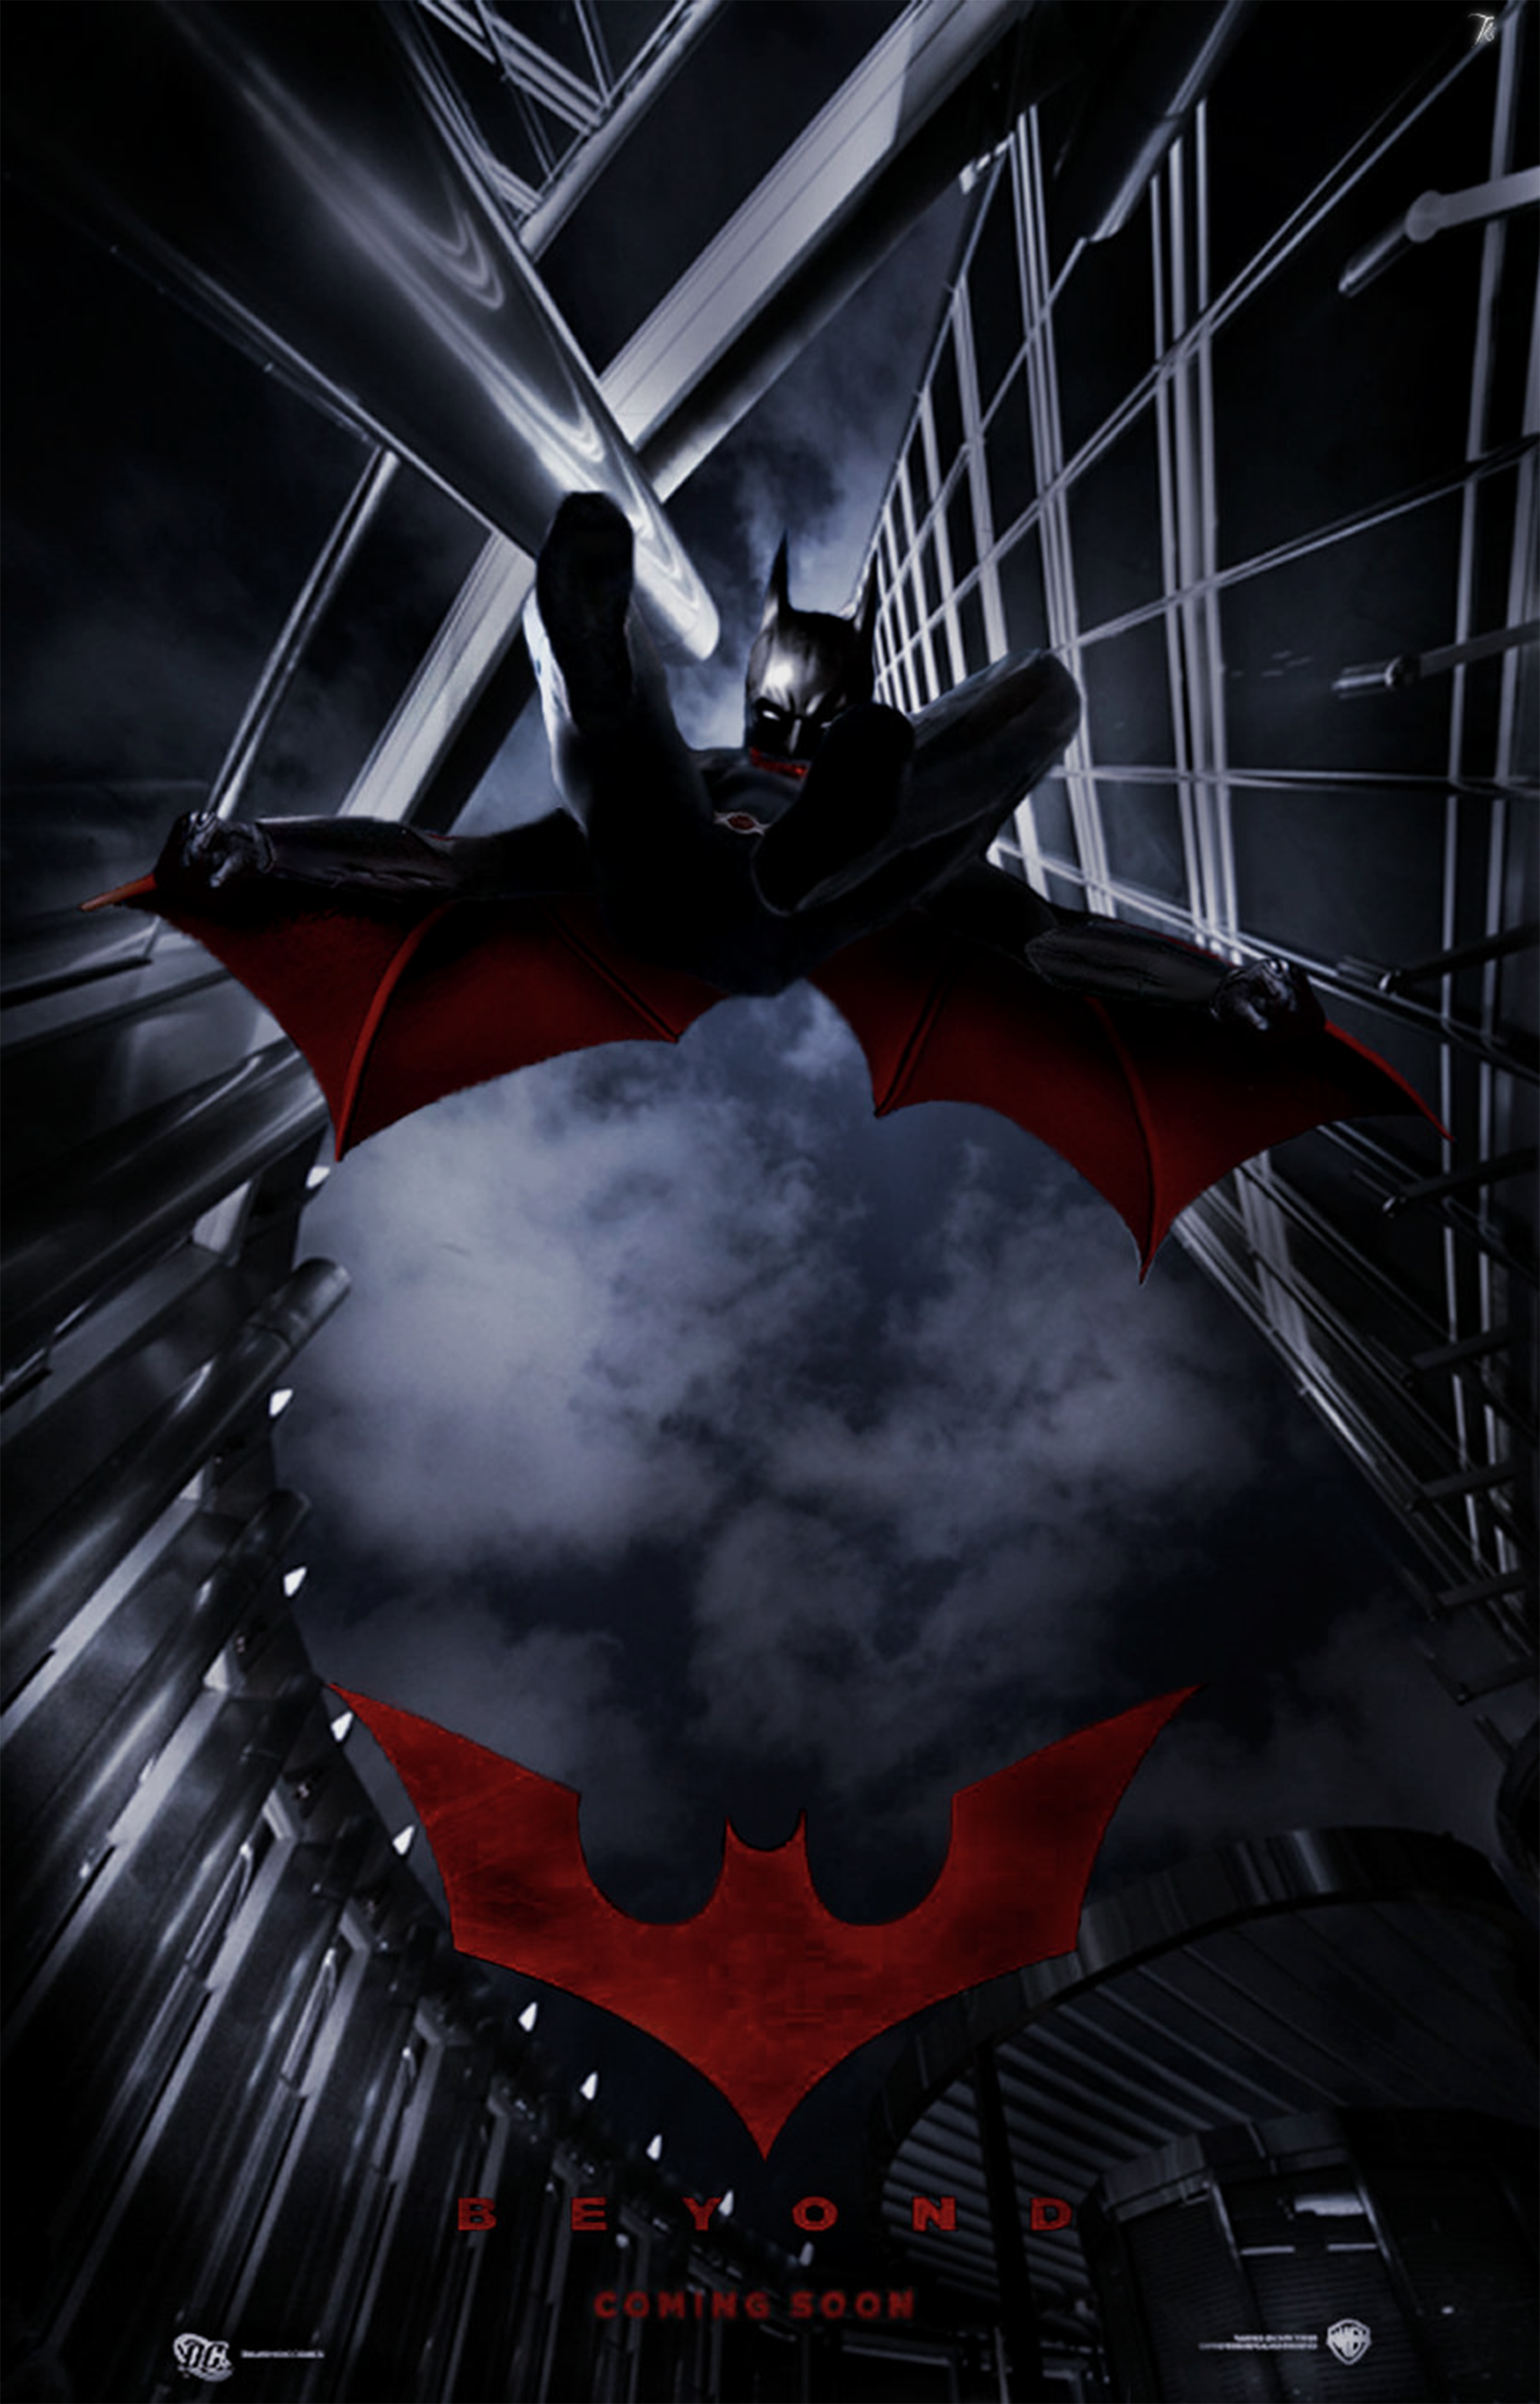 Vamers-Artistry-Celebrate-15-Years-of-Batman-Beyond-with-these-Fan-Made-Posters-Theo-Kyp-Serenno